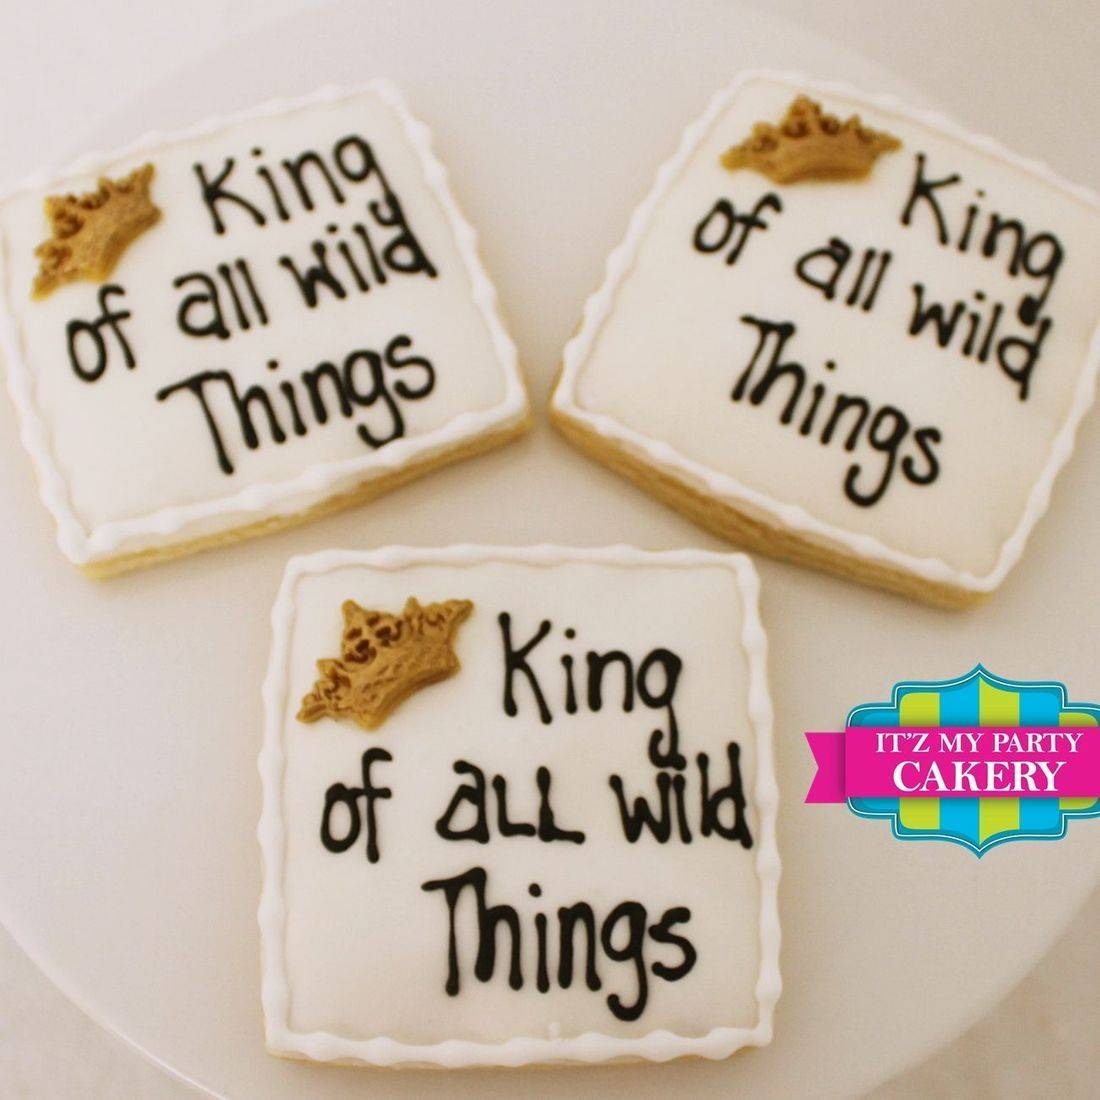 King of All Wild things  cookies Milwaukee